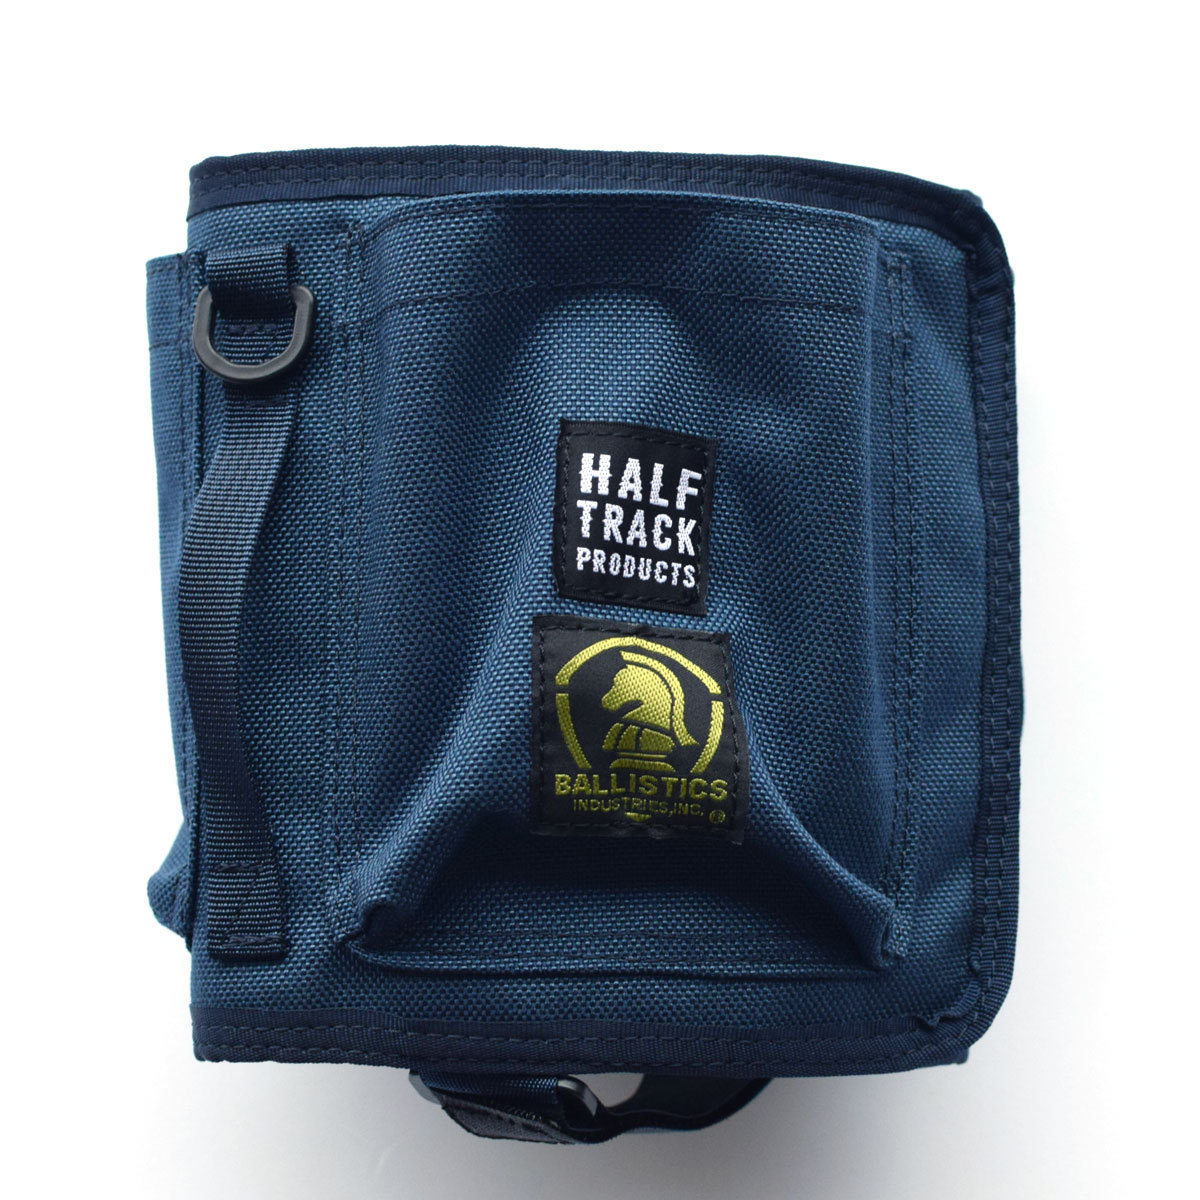 HALF TRACK PRODUCTS(ハーフトラックプロダクツ)wet cover pocket ウェットティッシュカバー